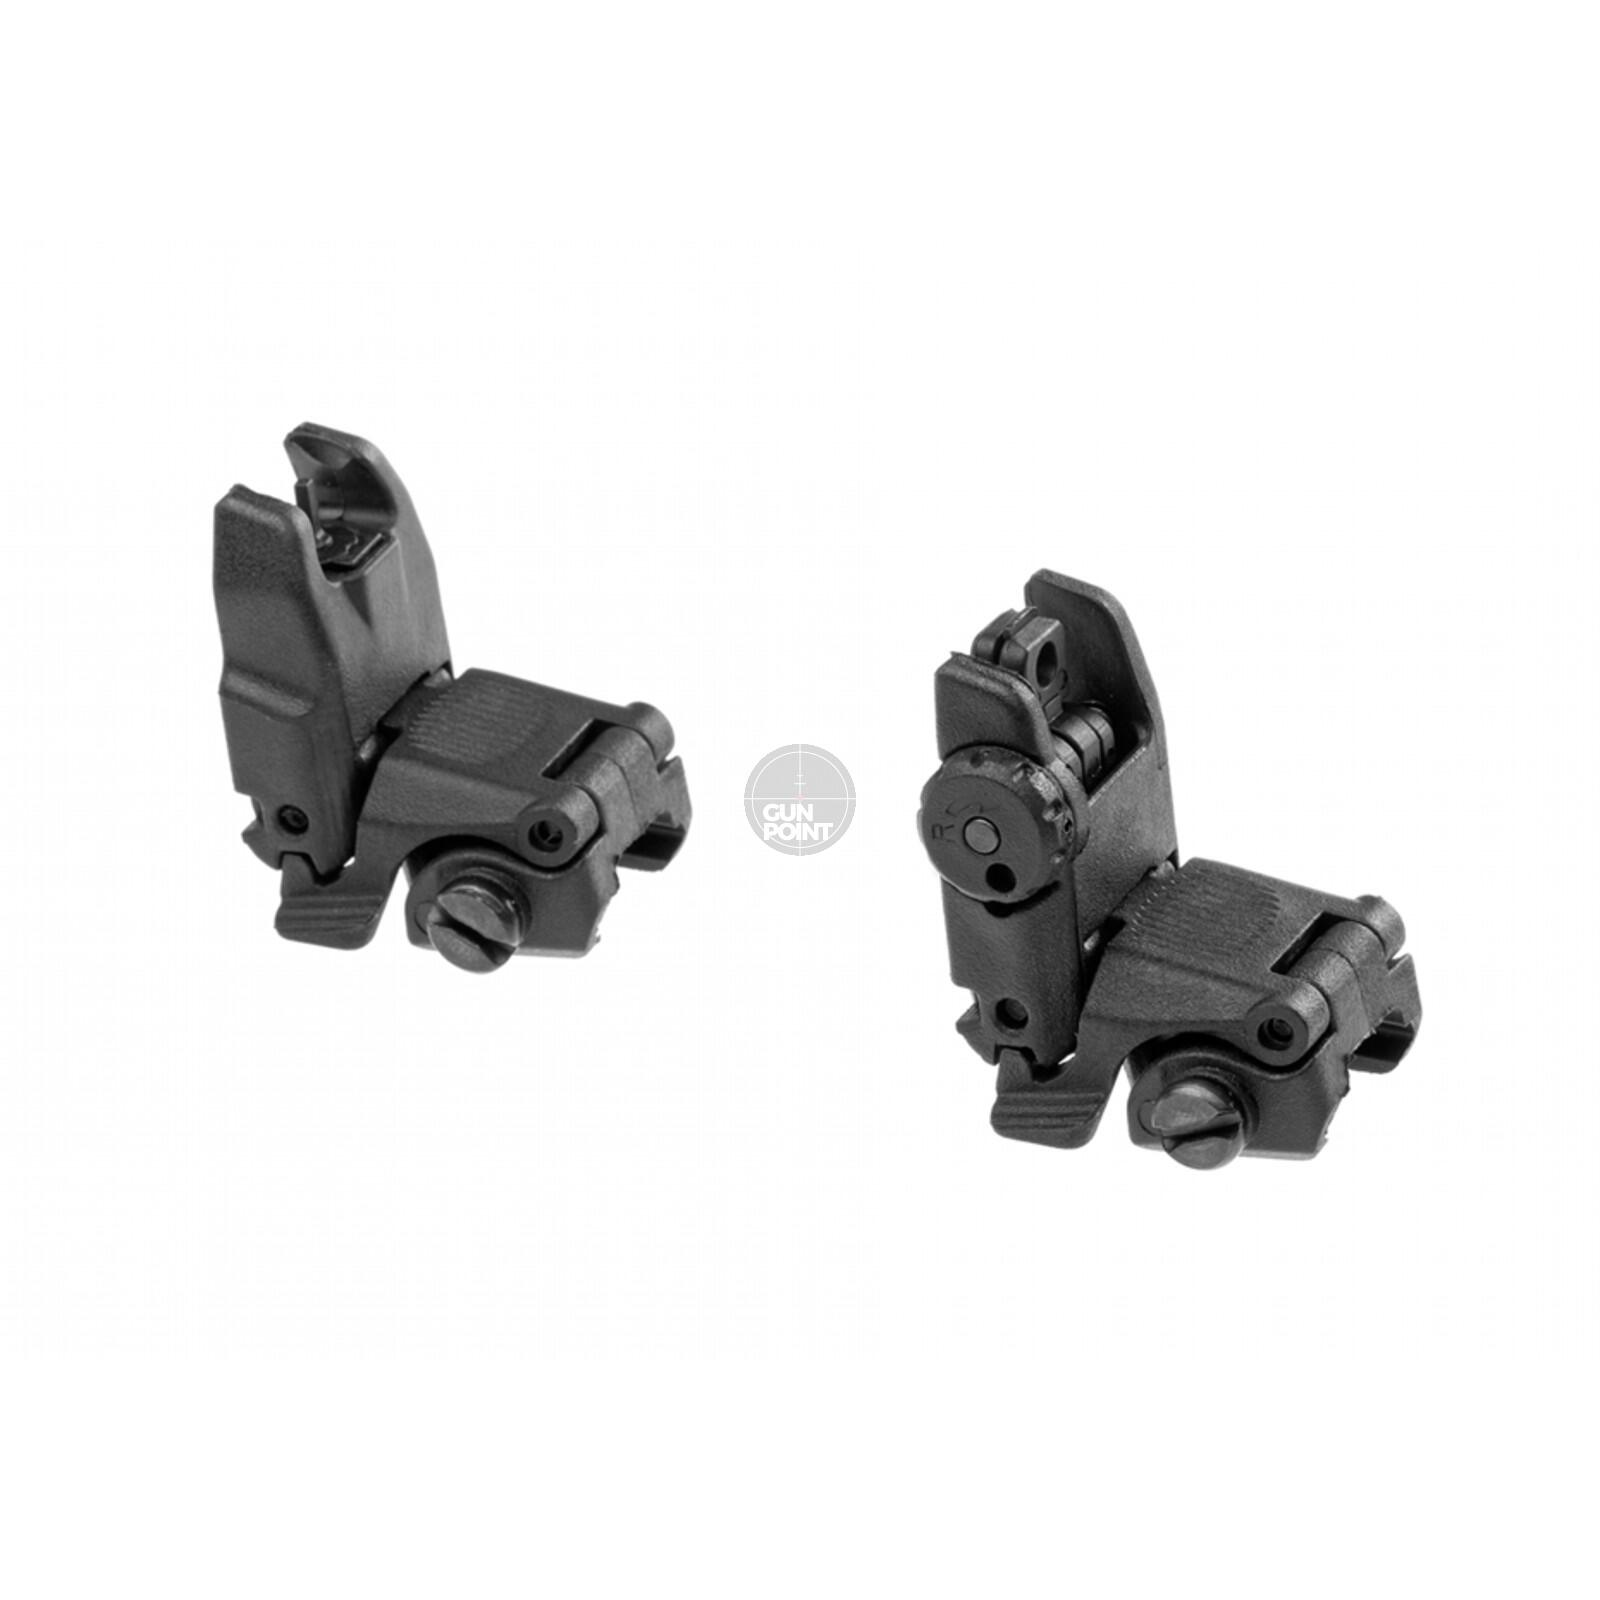 FBUS Flip Up Sight Set, bestehend aus Front und Rear Sight Black